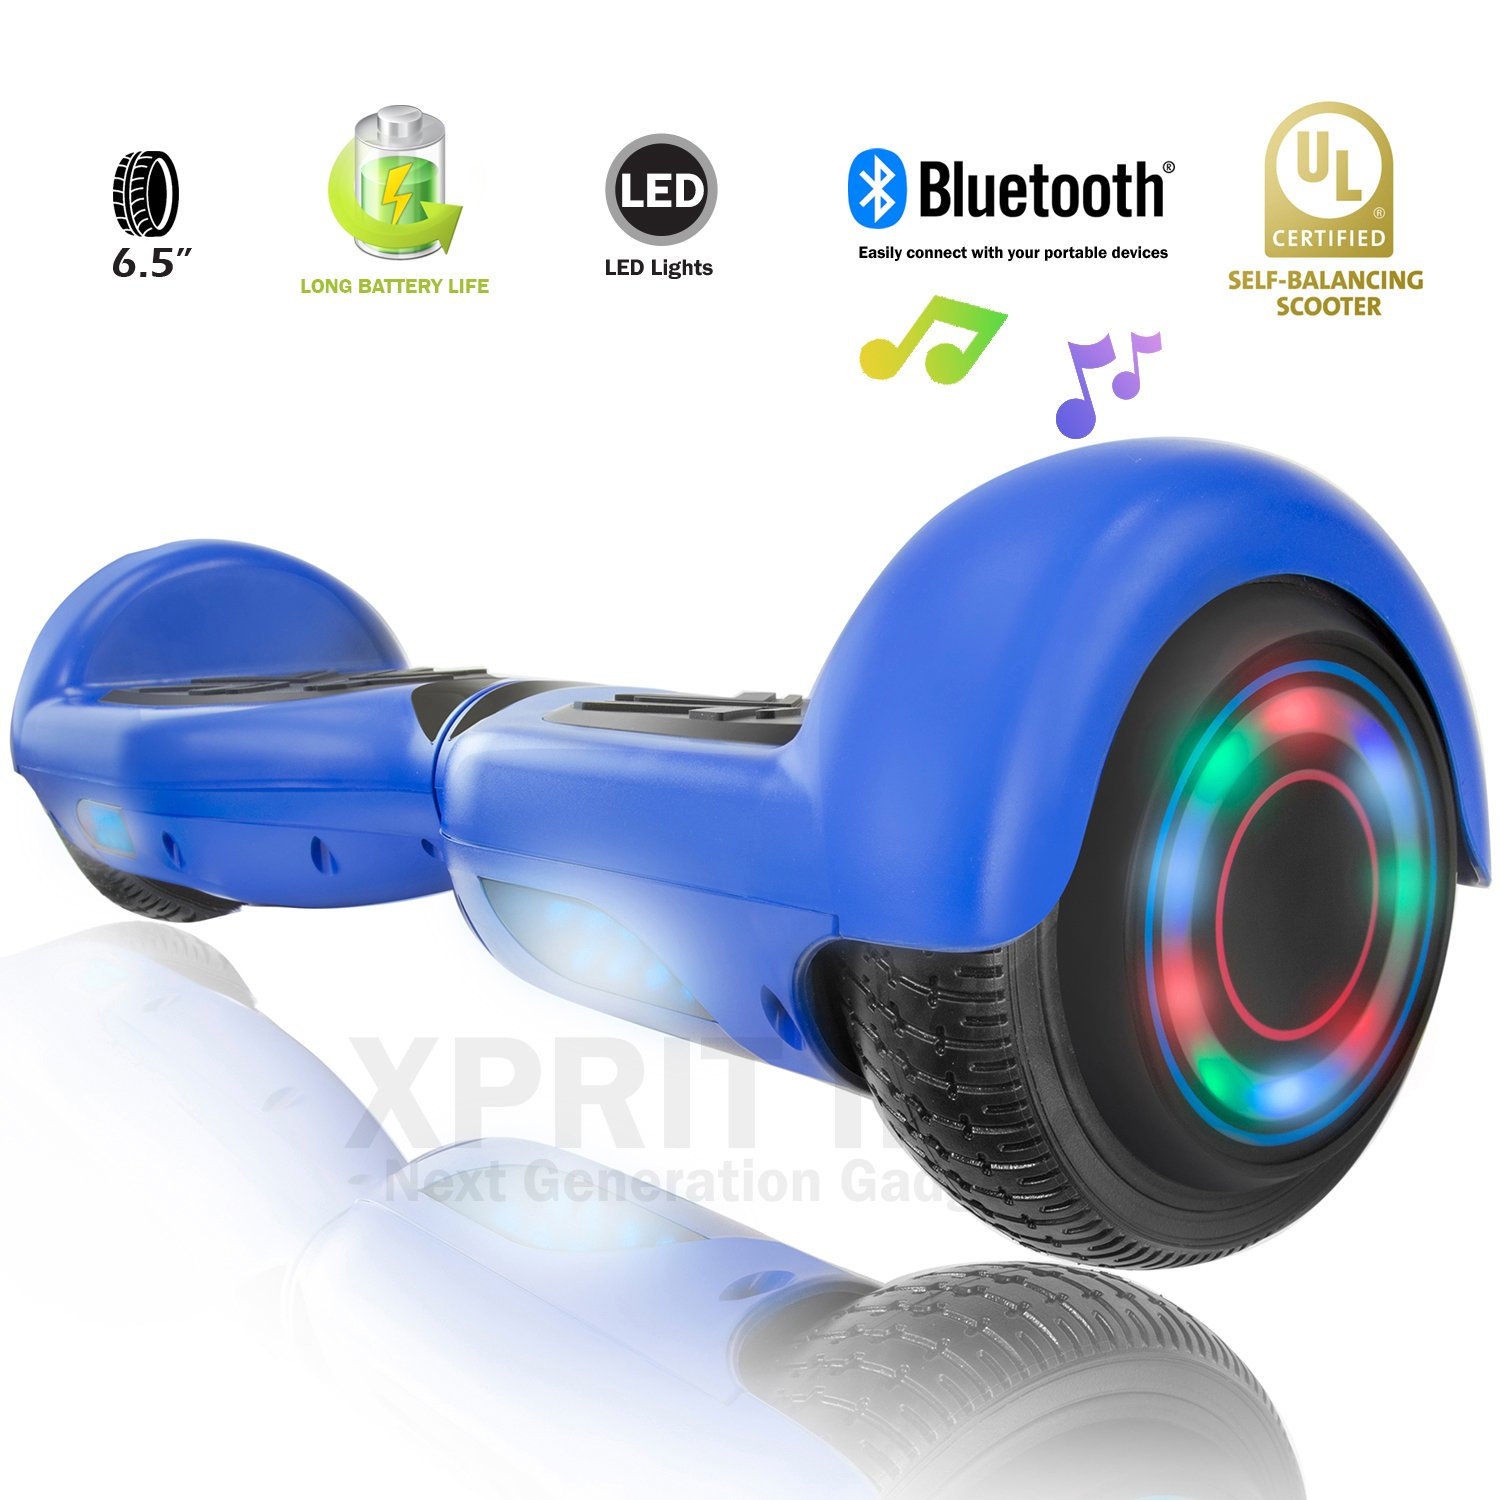 XPRIT Easter Sale Hoverboard w/Bluetooth Speaker (Blue) by XPRIT (Image #1)